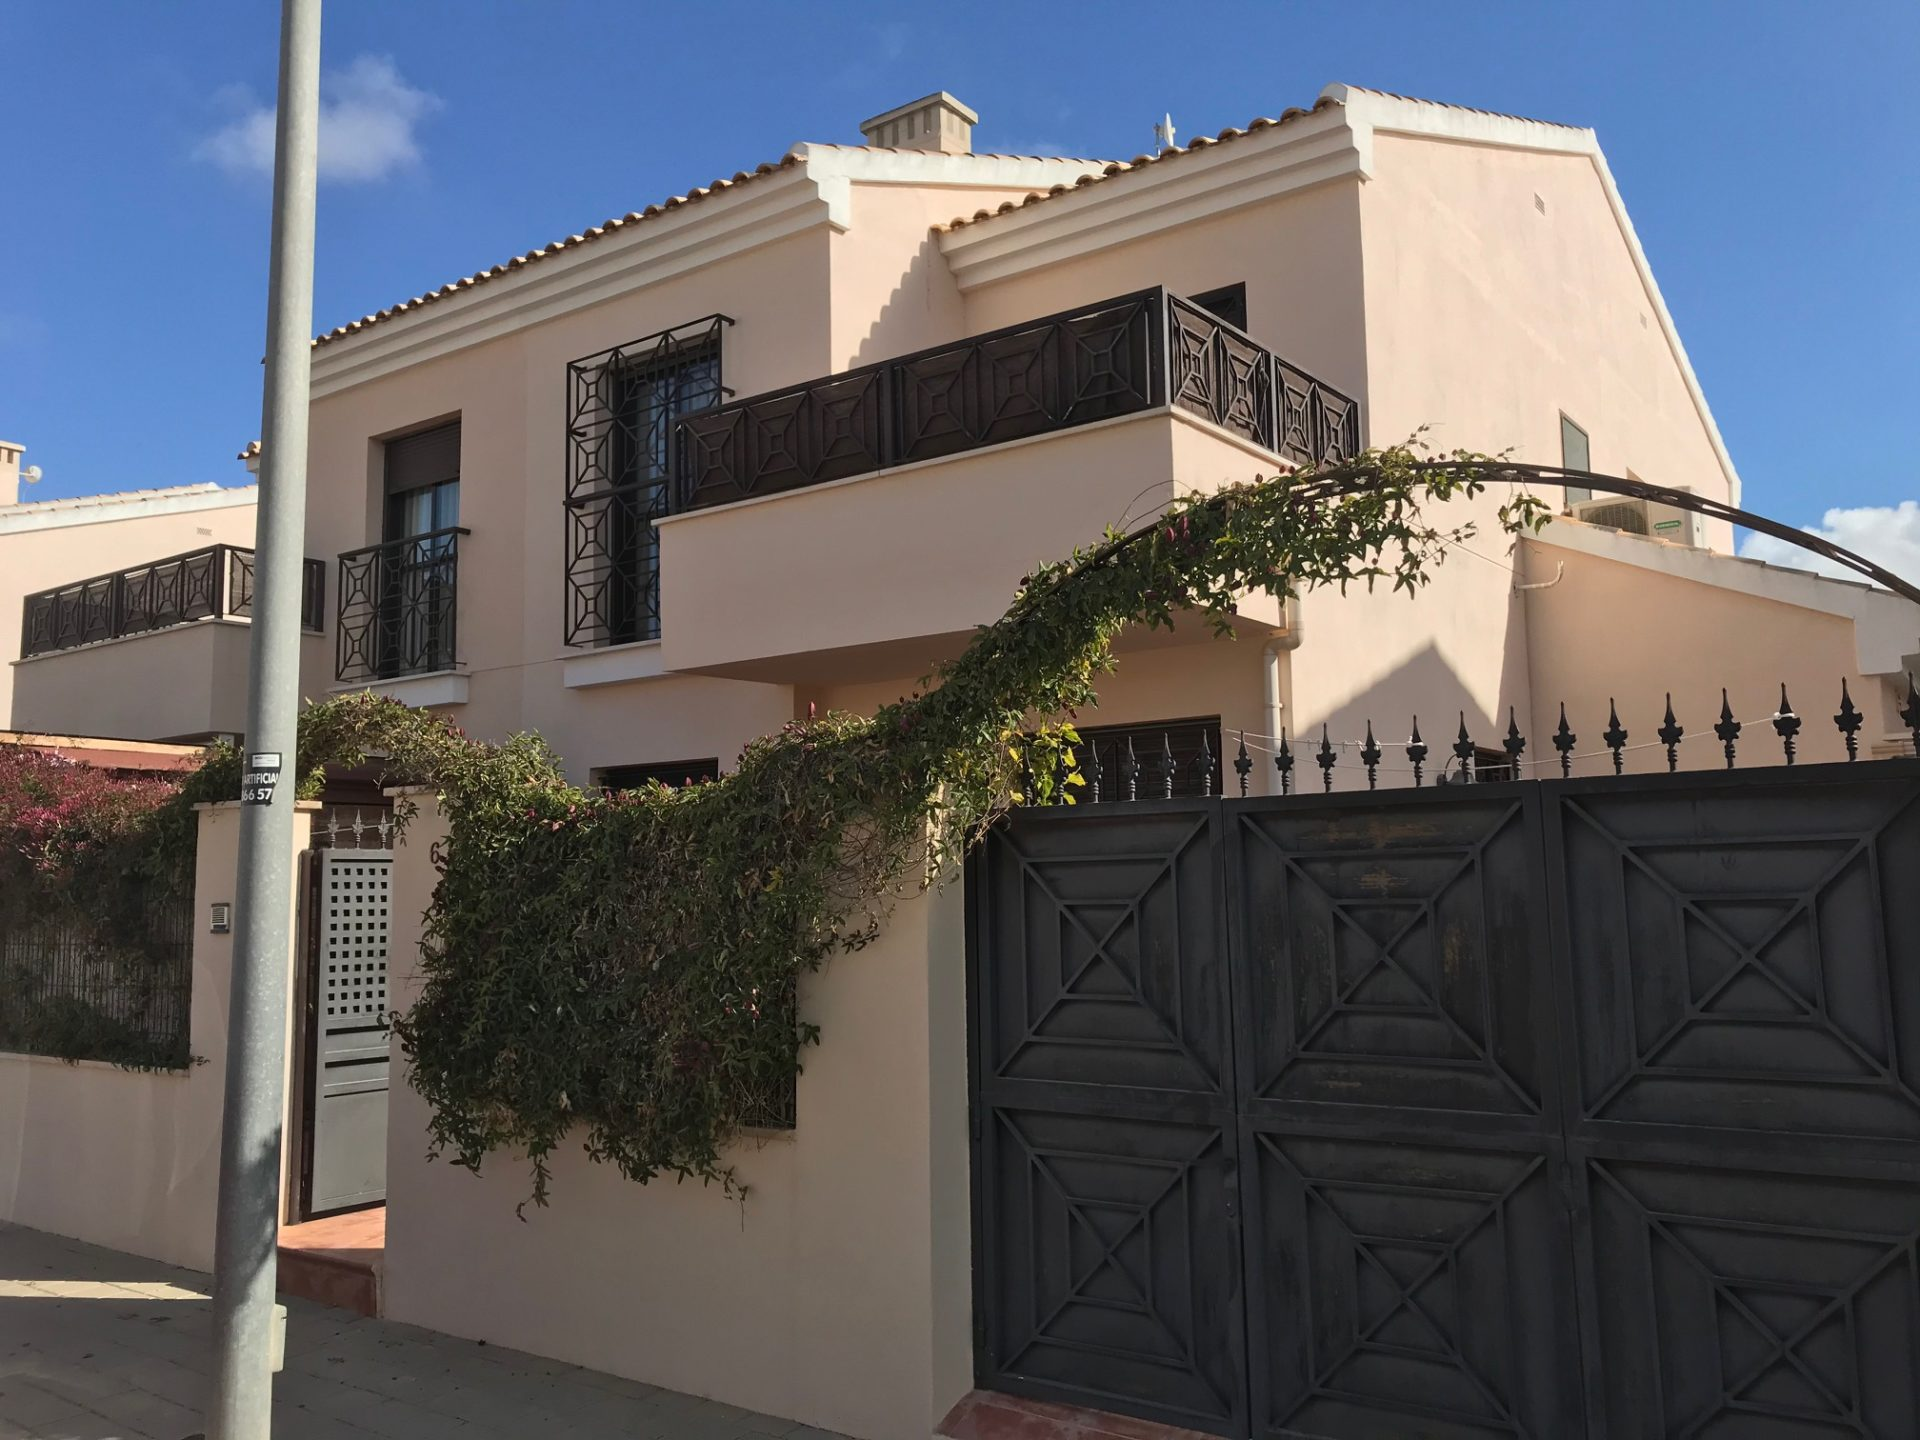 3 Bed 2 Bath Quad House San Cayetano 1